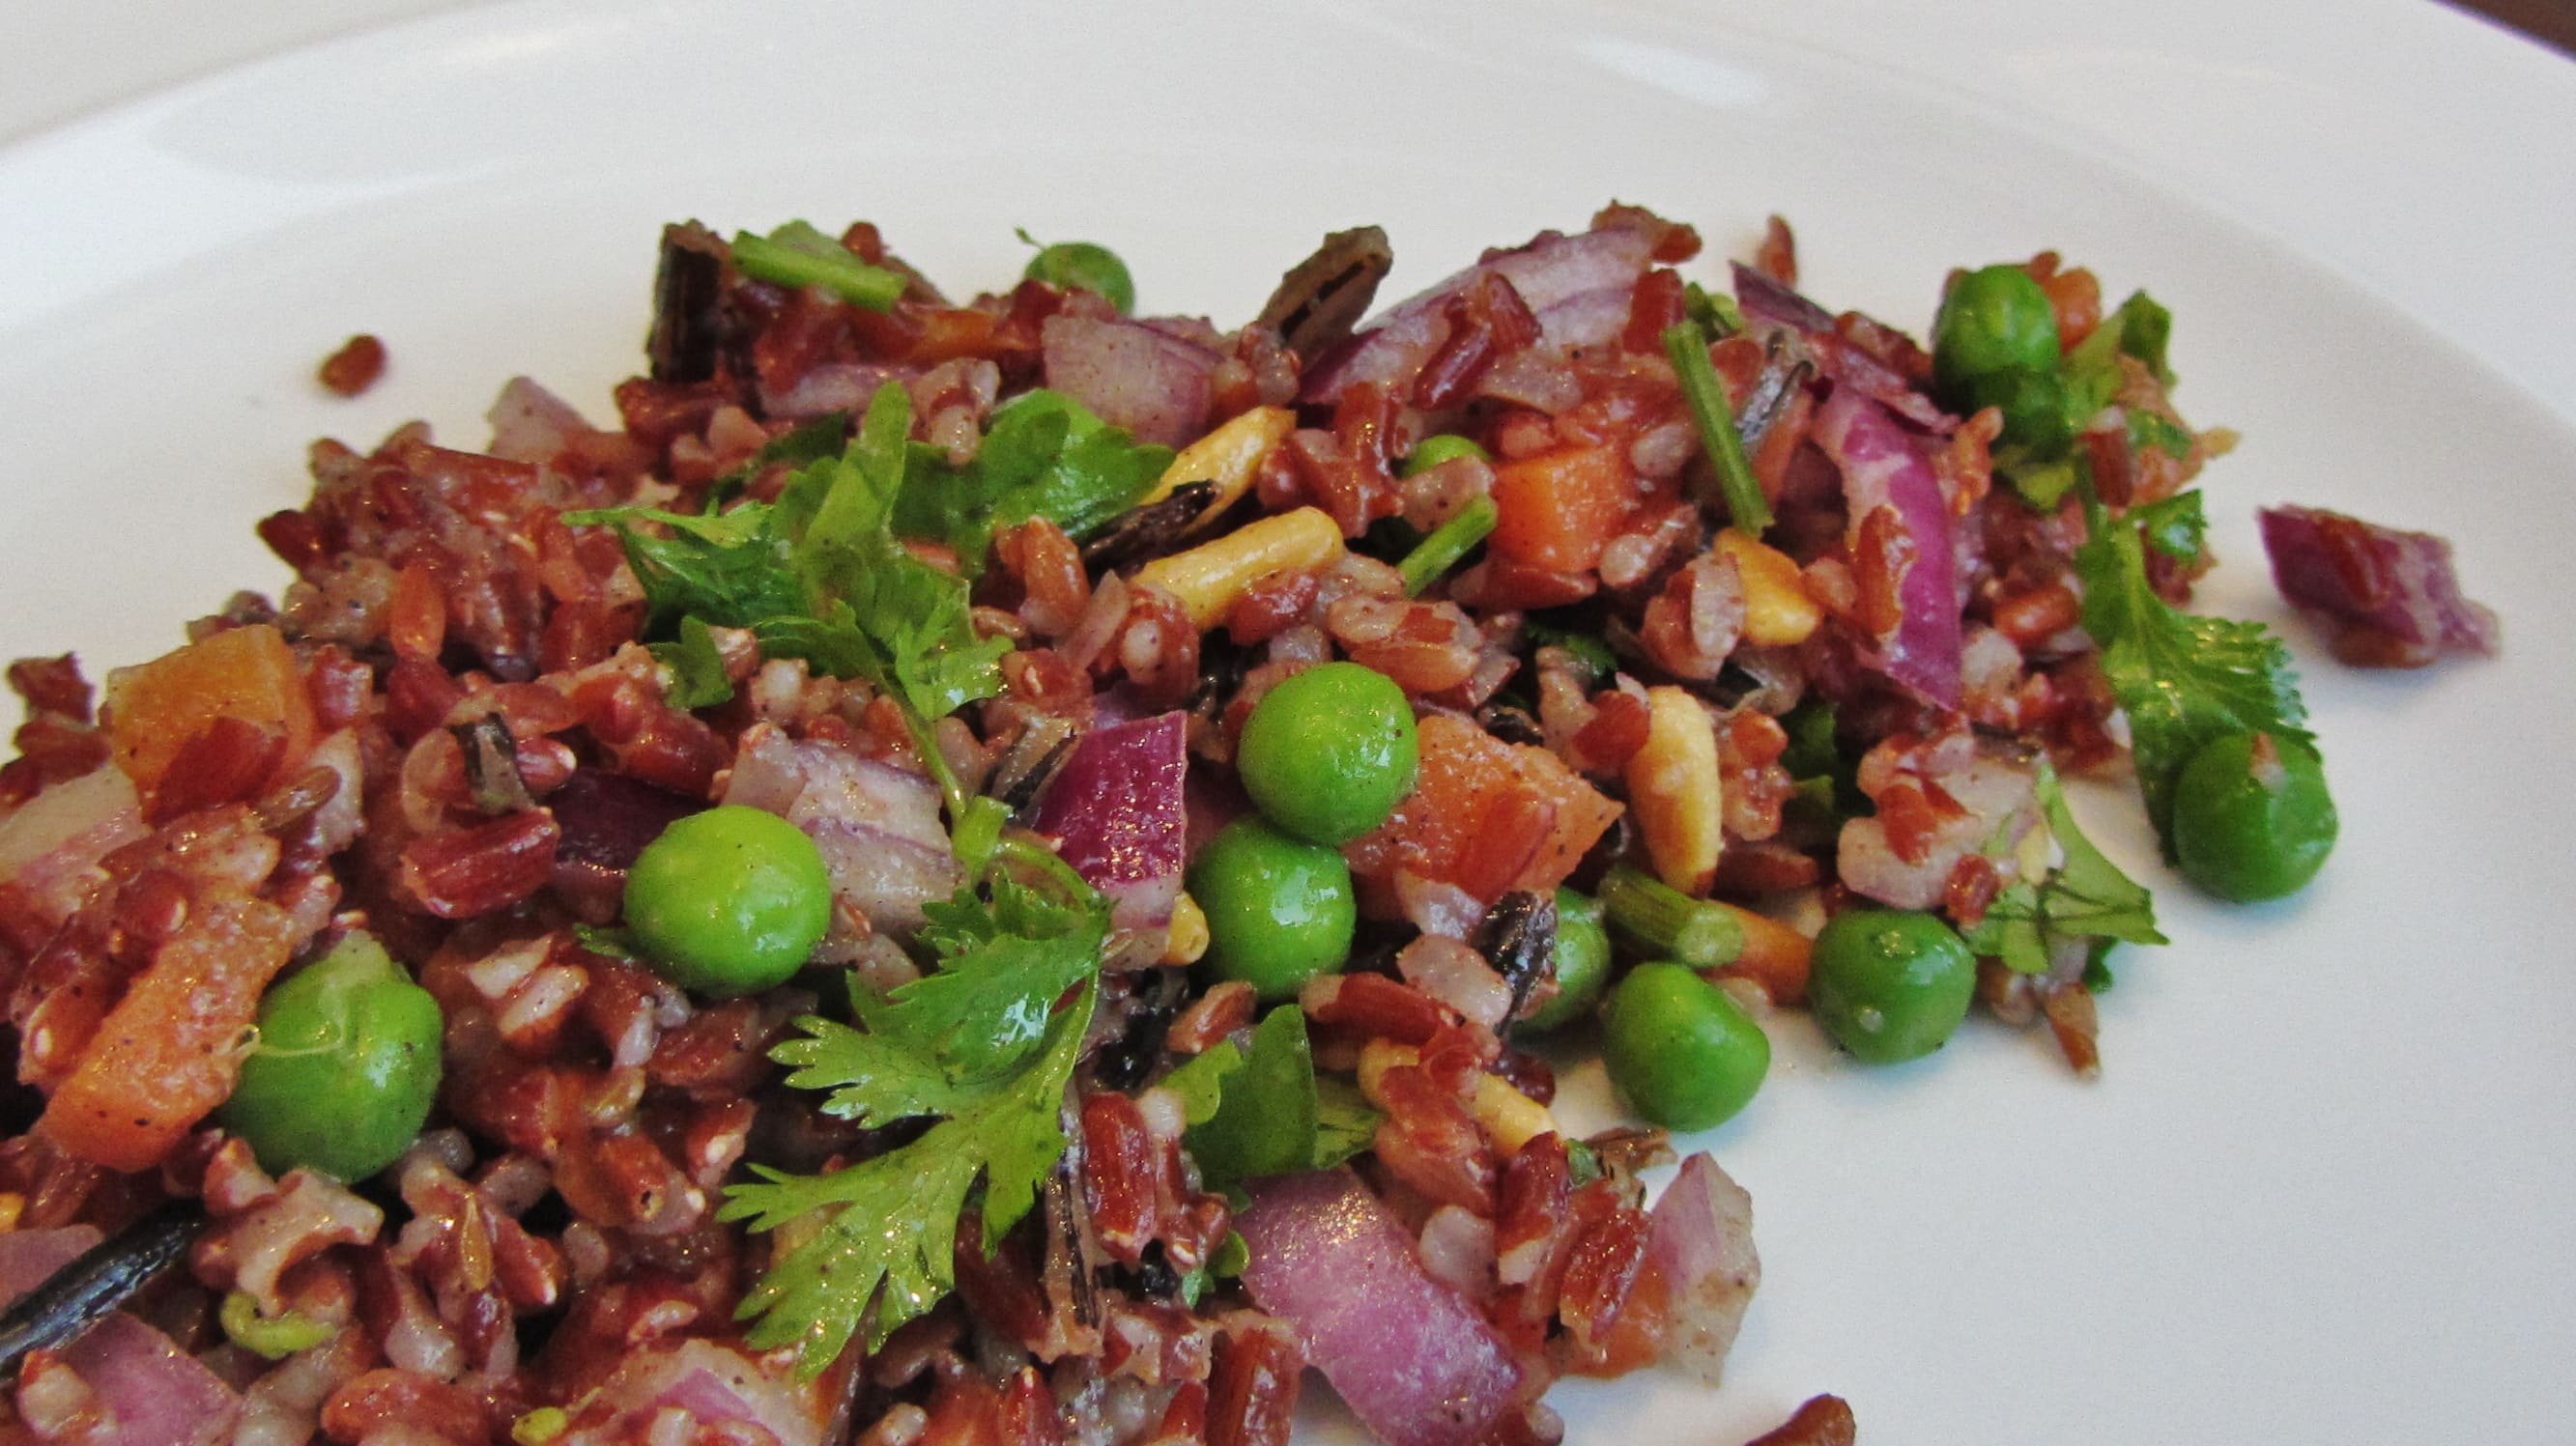 Spiced Wild Rice and Pea Salad